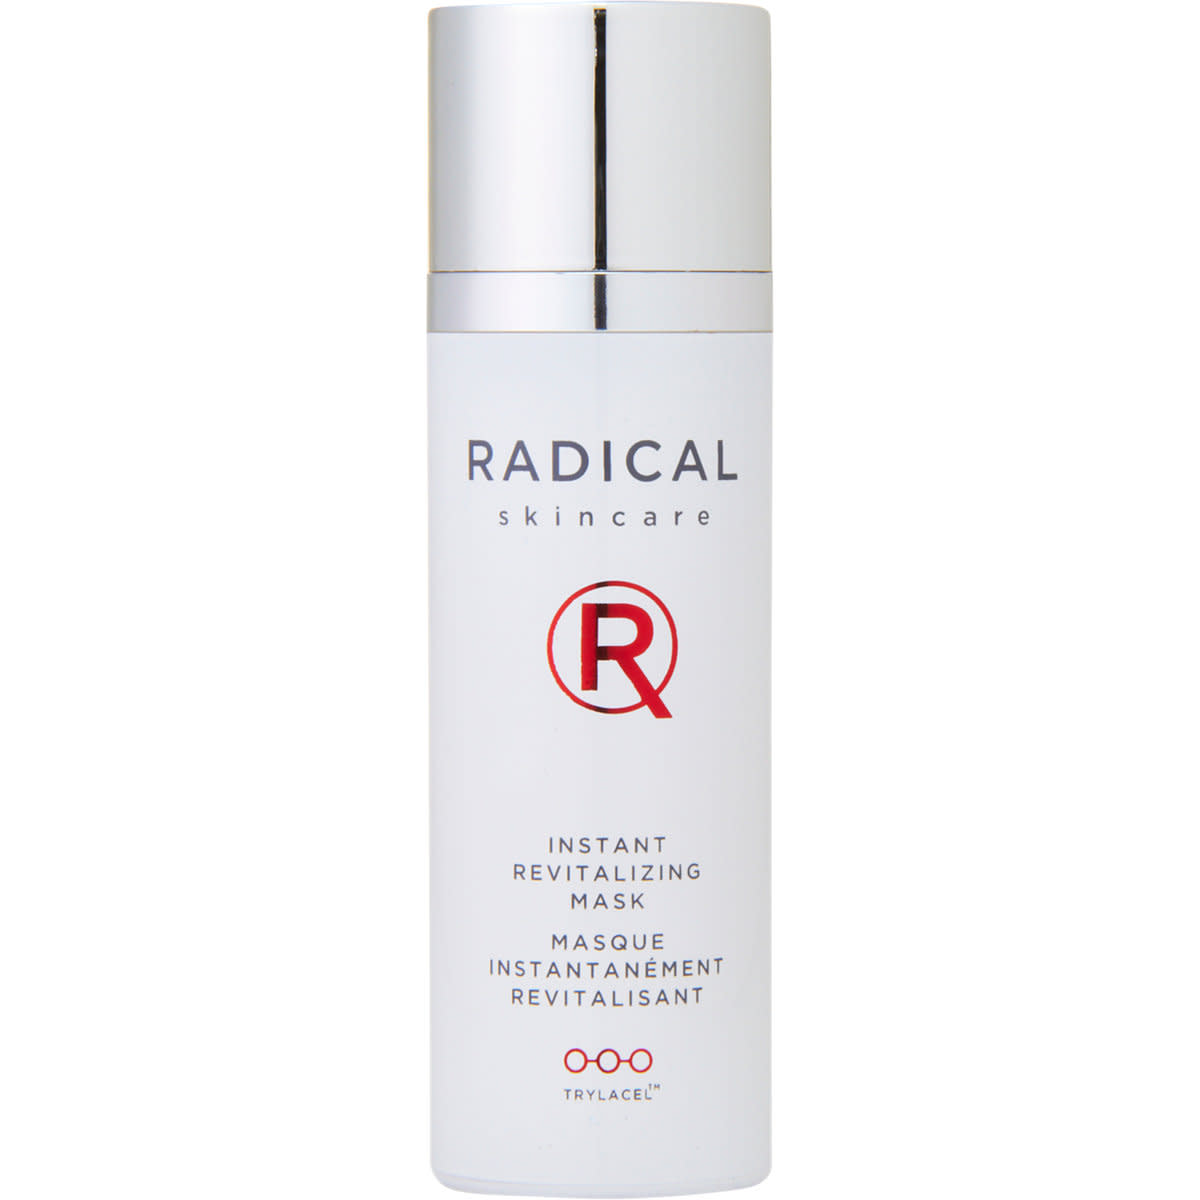 Radical Skincare Mask